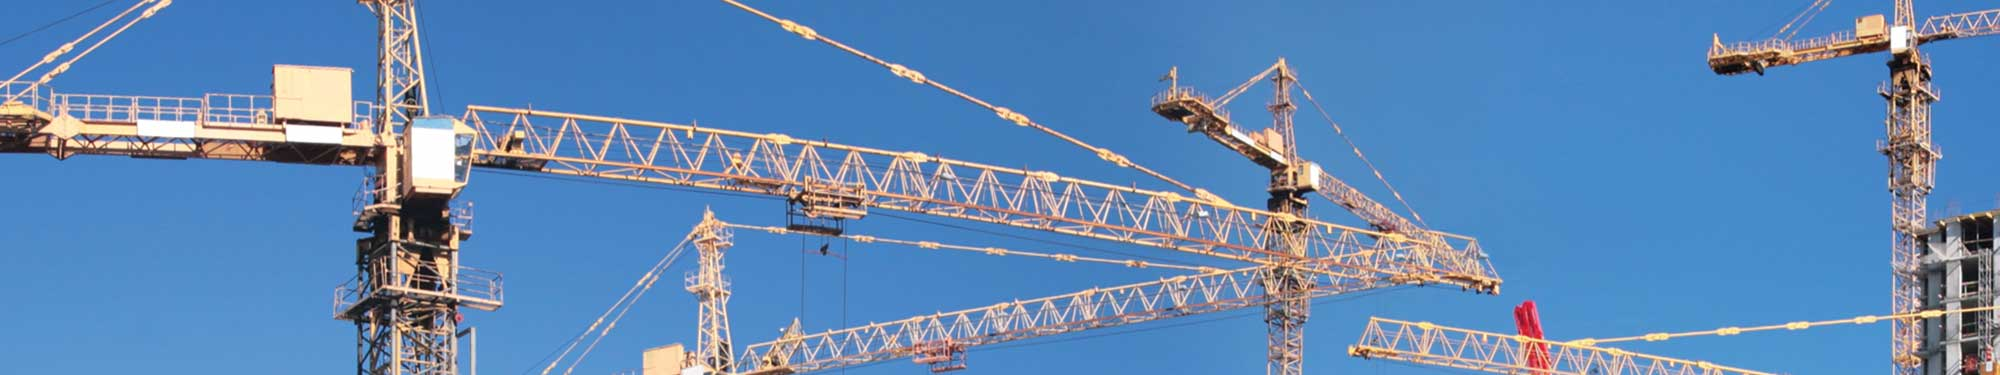 Cranes working on a commercial development project